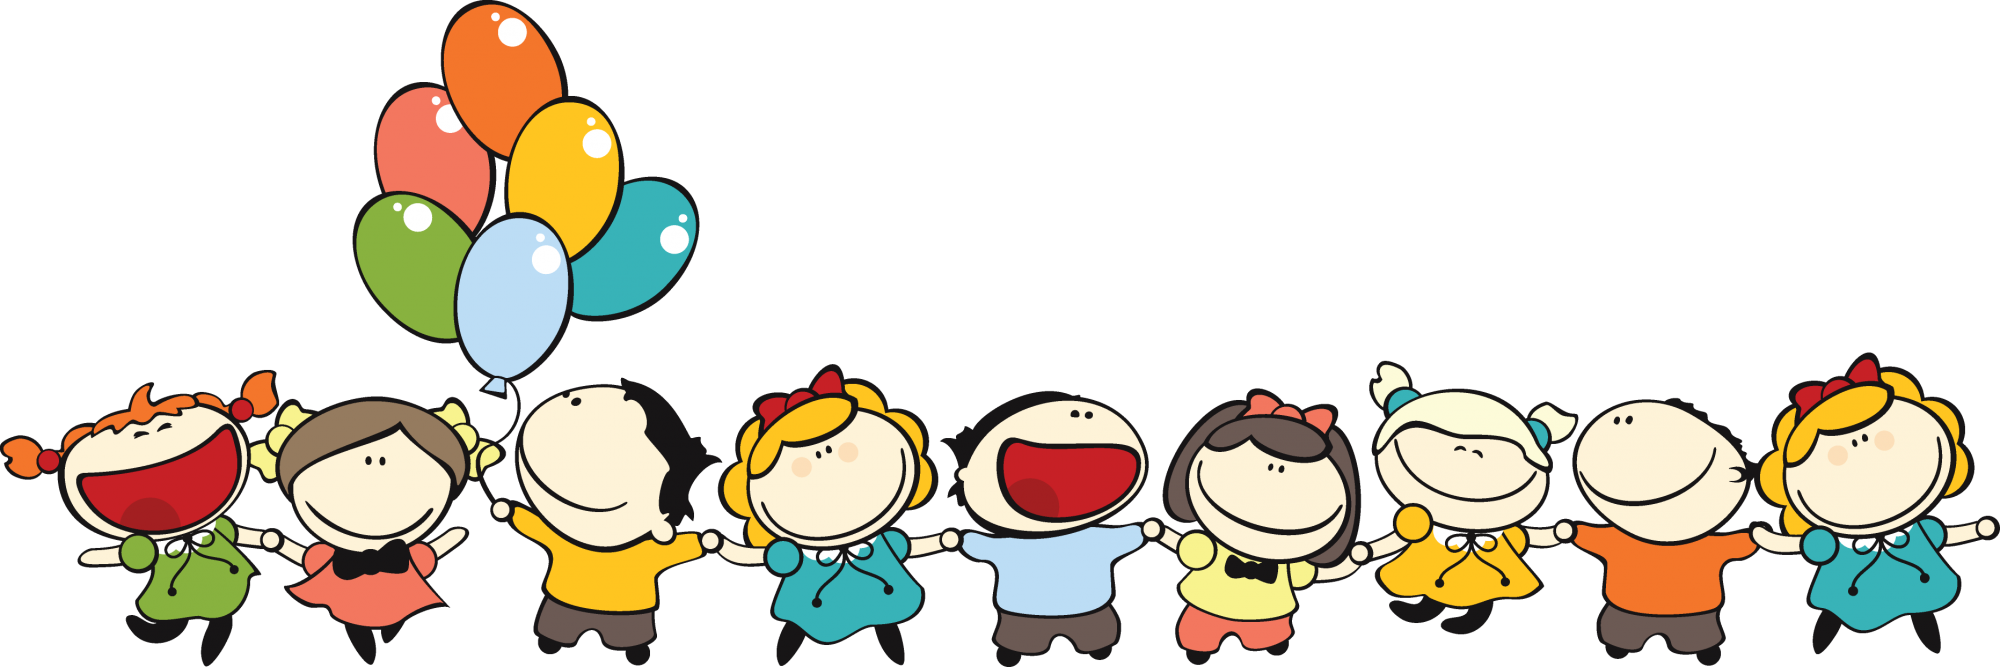 Free Cartoon Kids Pictures, Download Free Clip Art, Free Clip Art on.